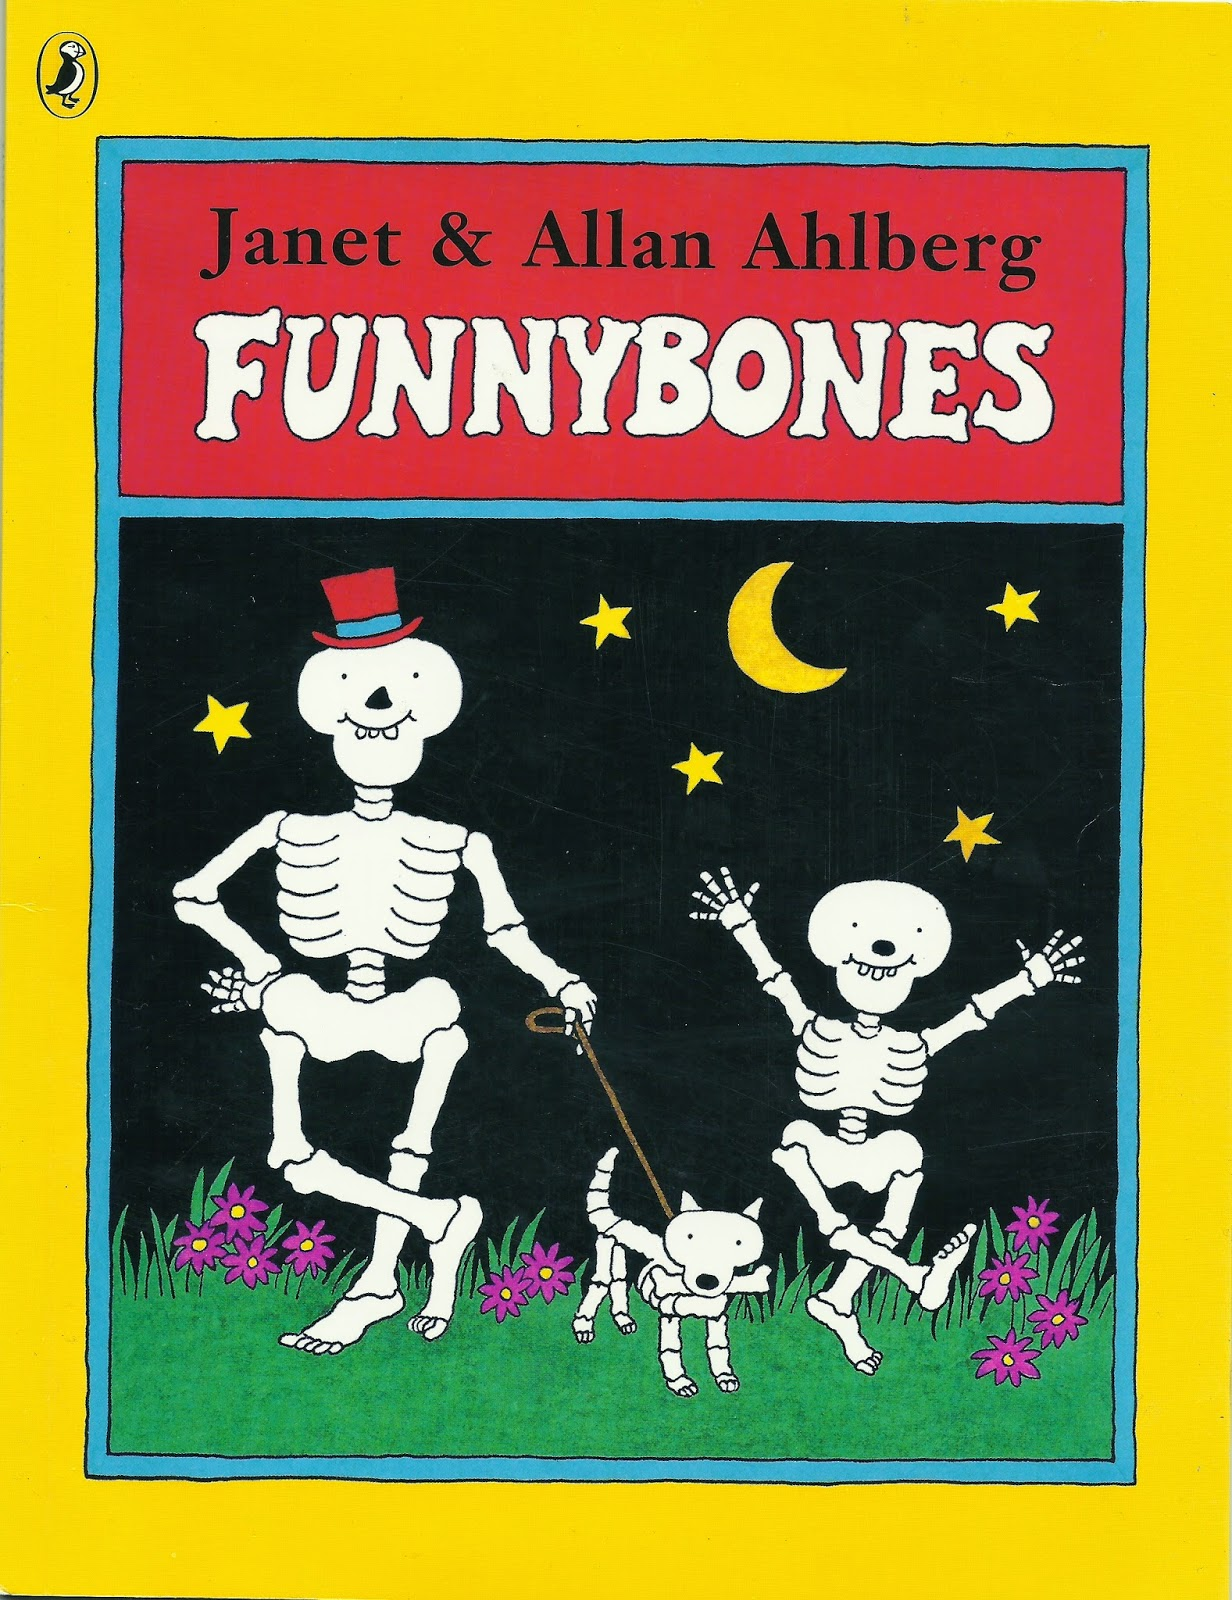 https://www.goodreads.com/series/71096-funnybones